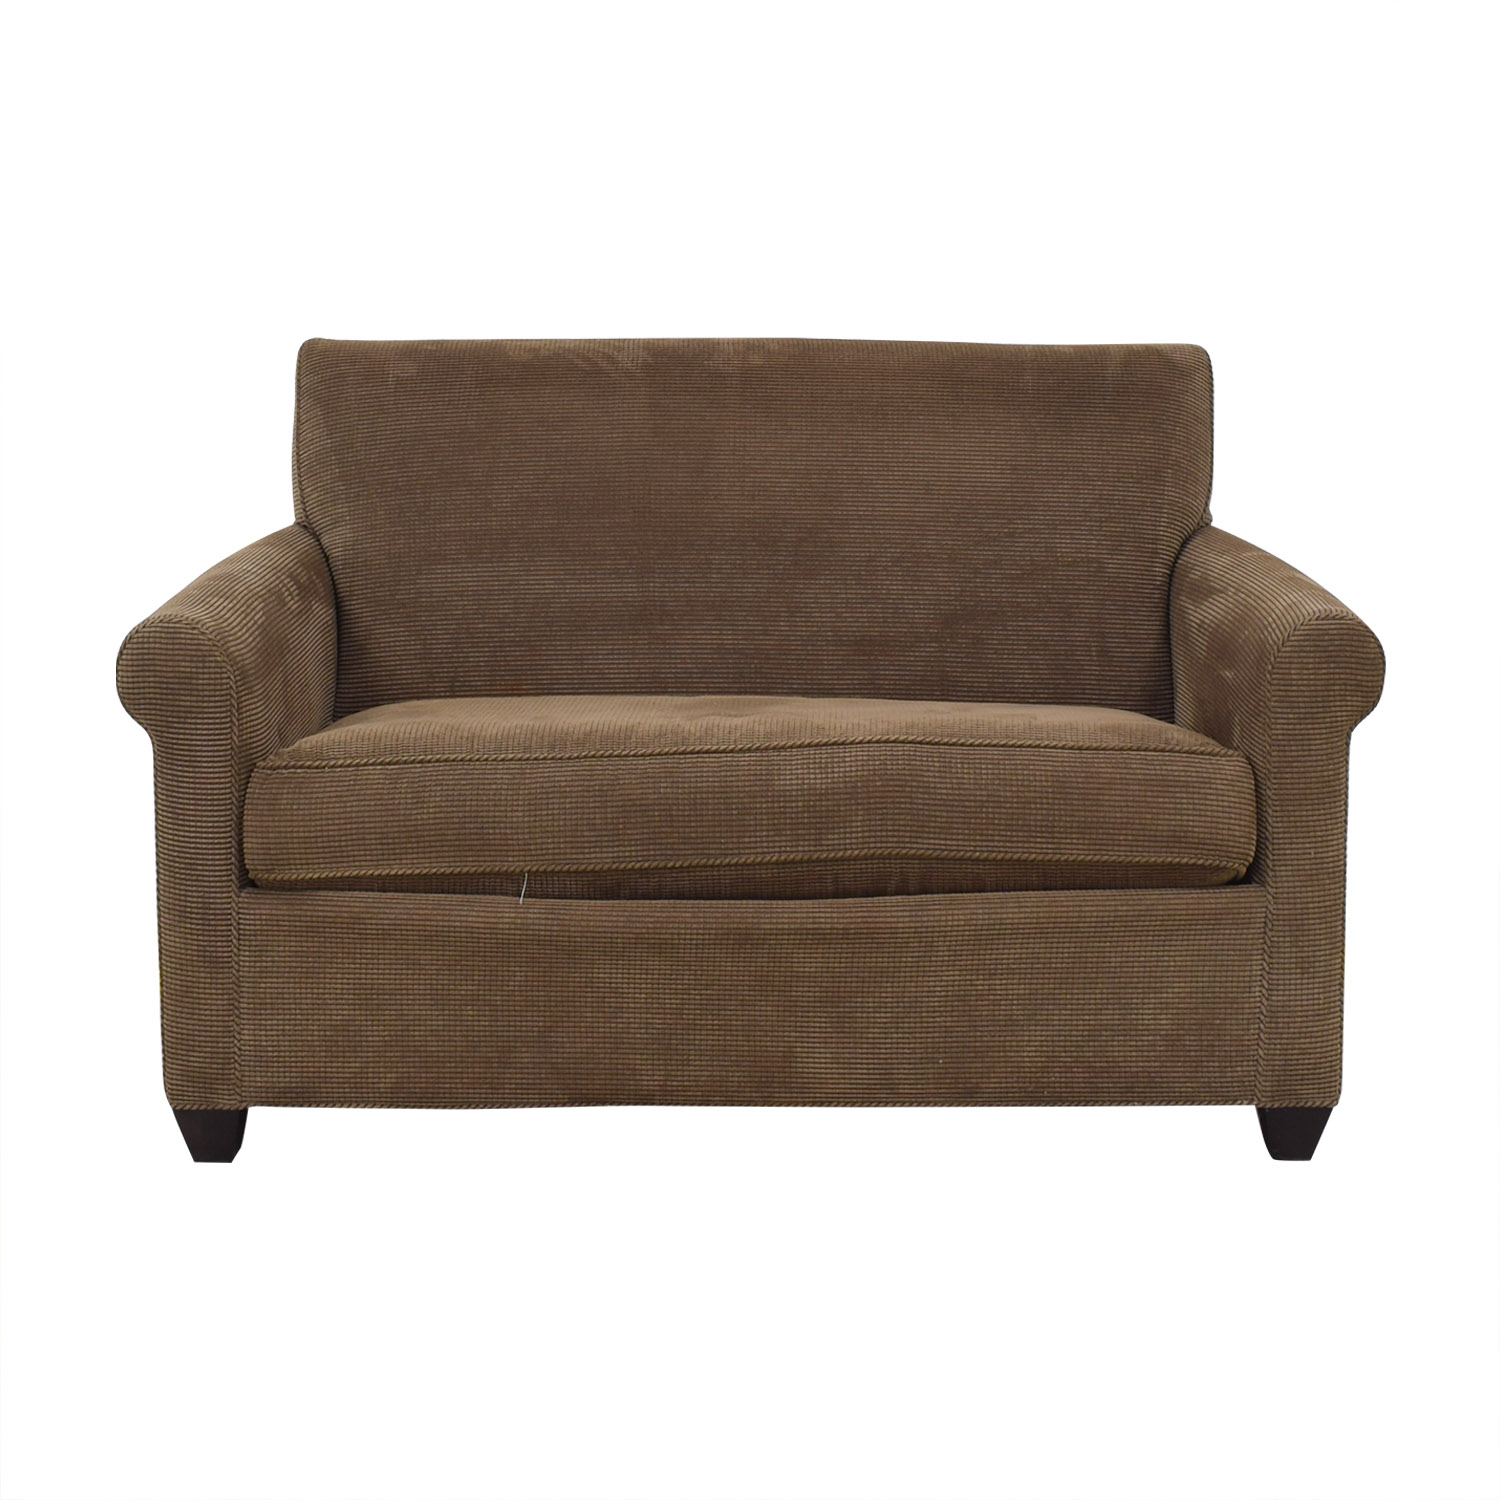 Crate & Barrel Crate & Barrel Hayward Twin Sleeper Sofa for sale